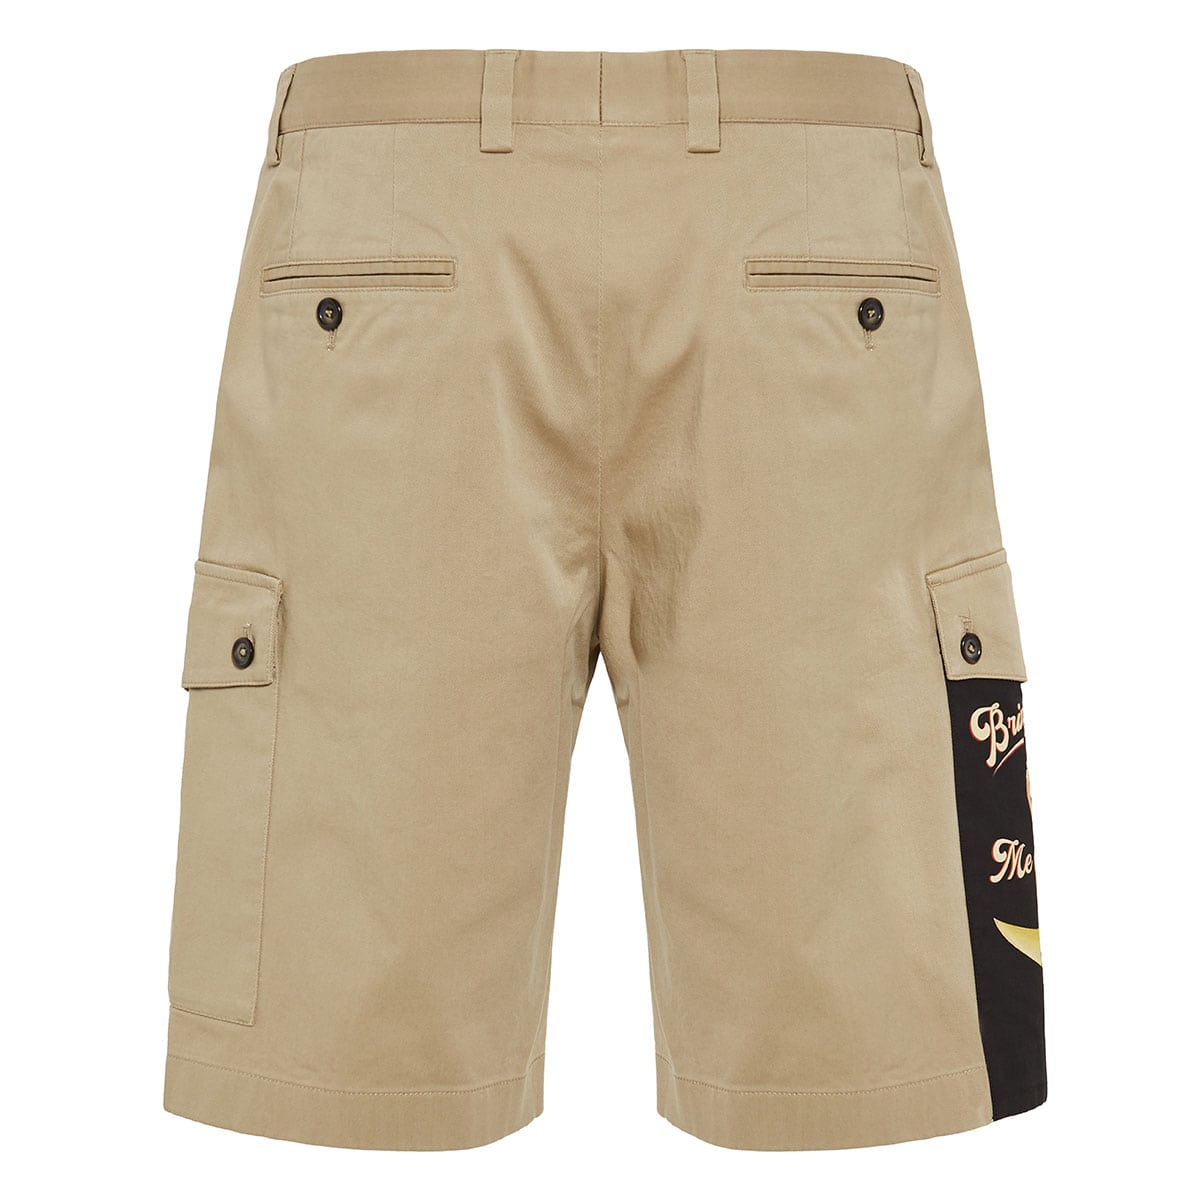 Pin-up Patch cargo shorts